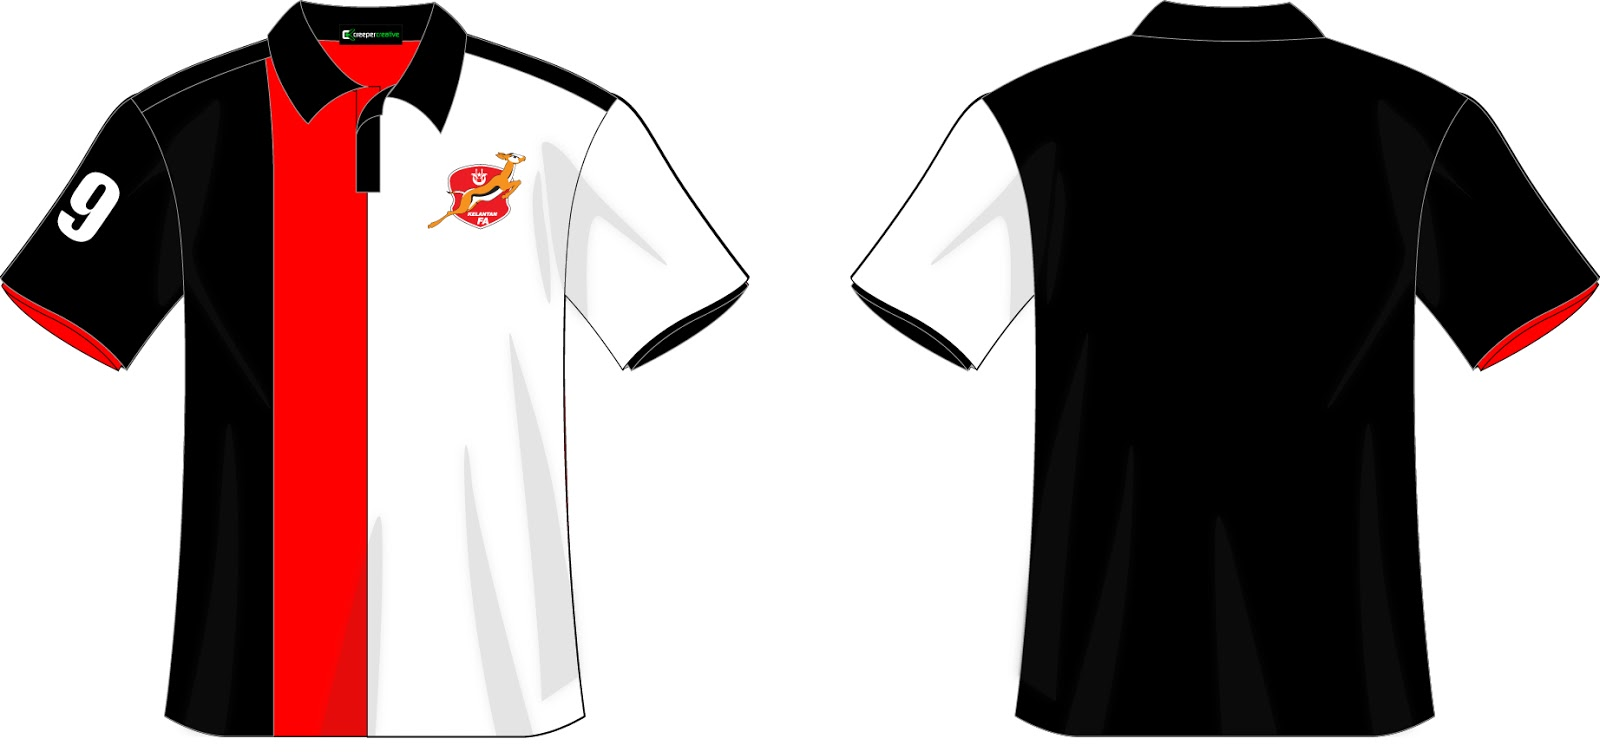 Polo shirt design your own - United Arab Emirates 100 Polo T Shirt United Arab Emirates 100 Polo T Shirt Manufacturers And Suppliers On Alibaba Com